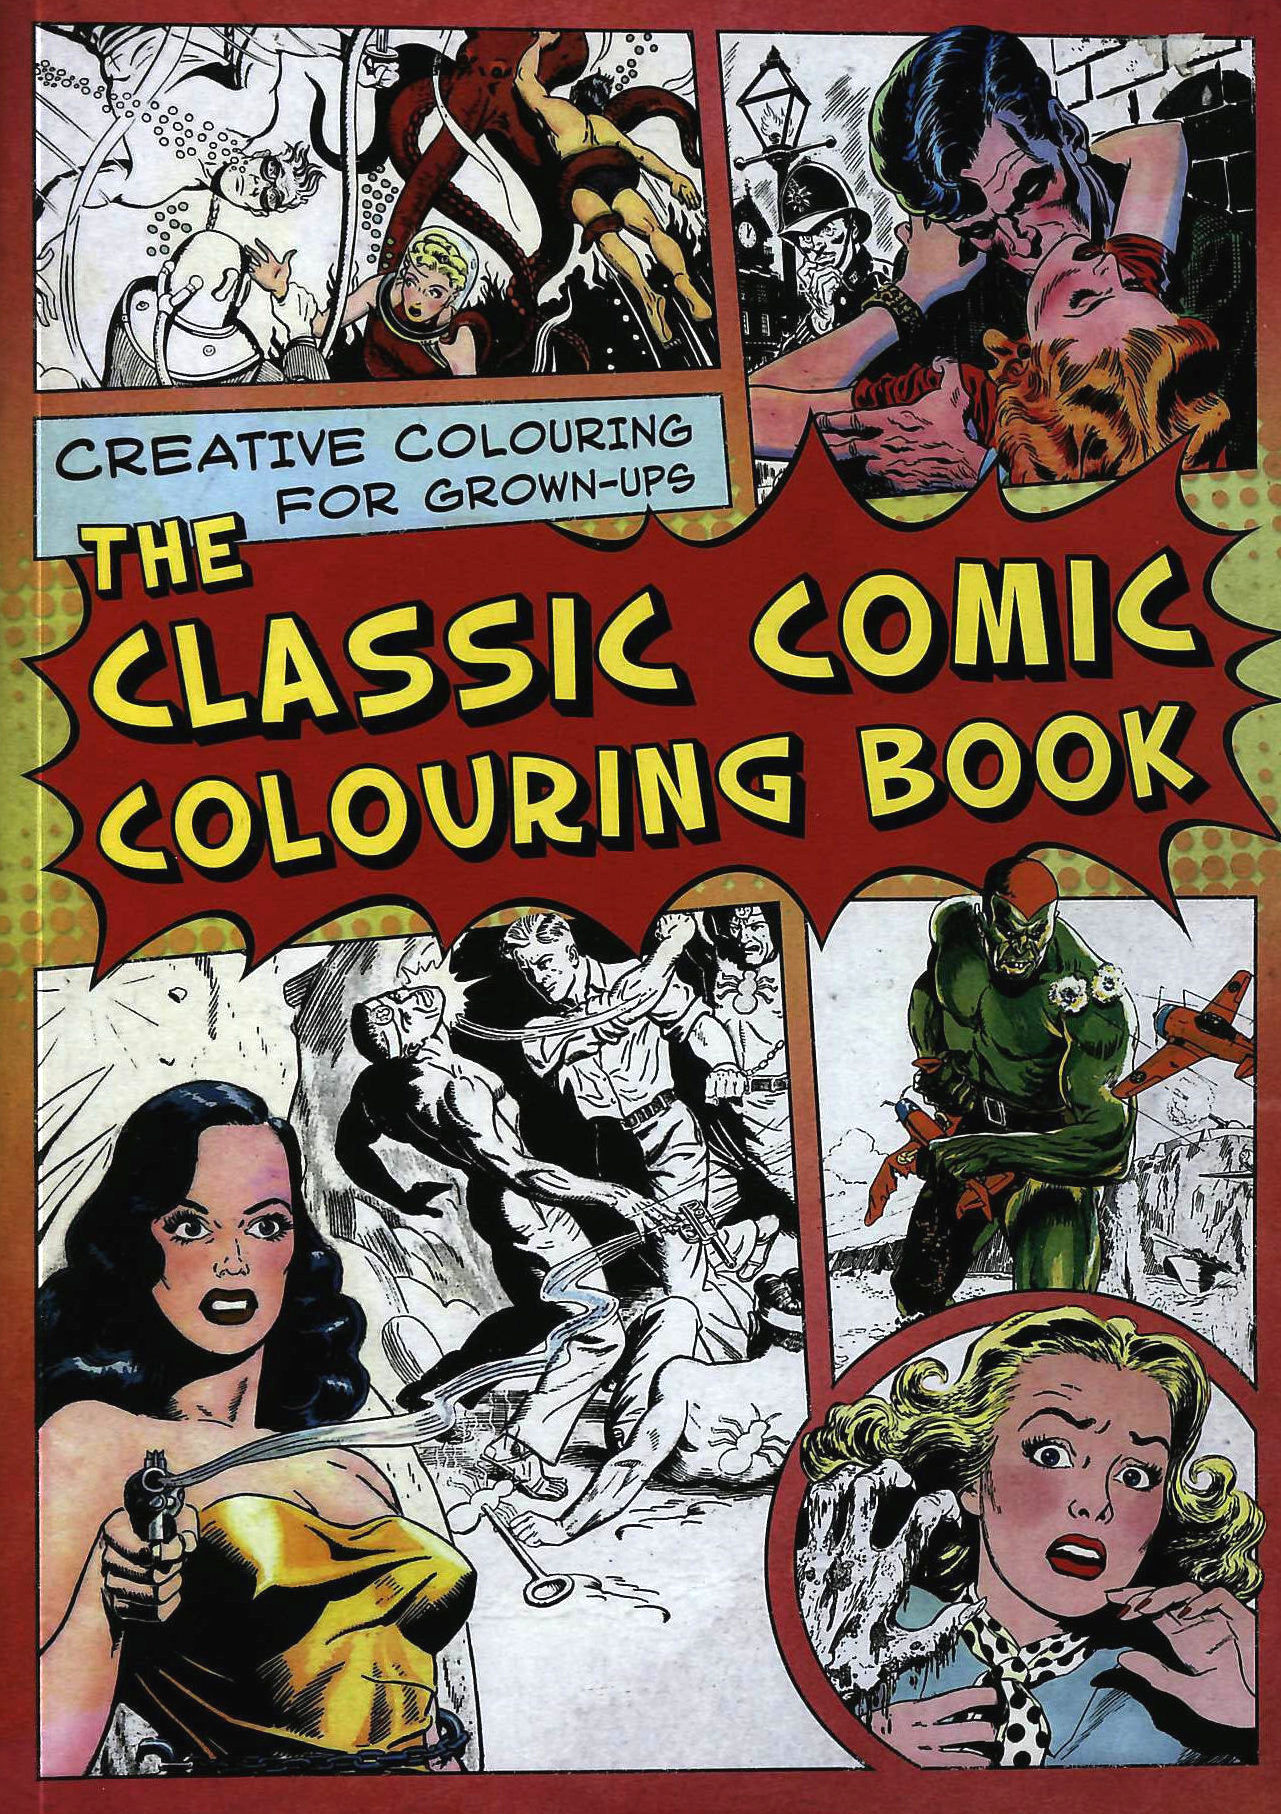 Image for The Classic Comic Colouring Book: Creative Colouring for Grown-ups